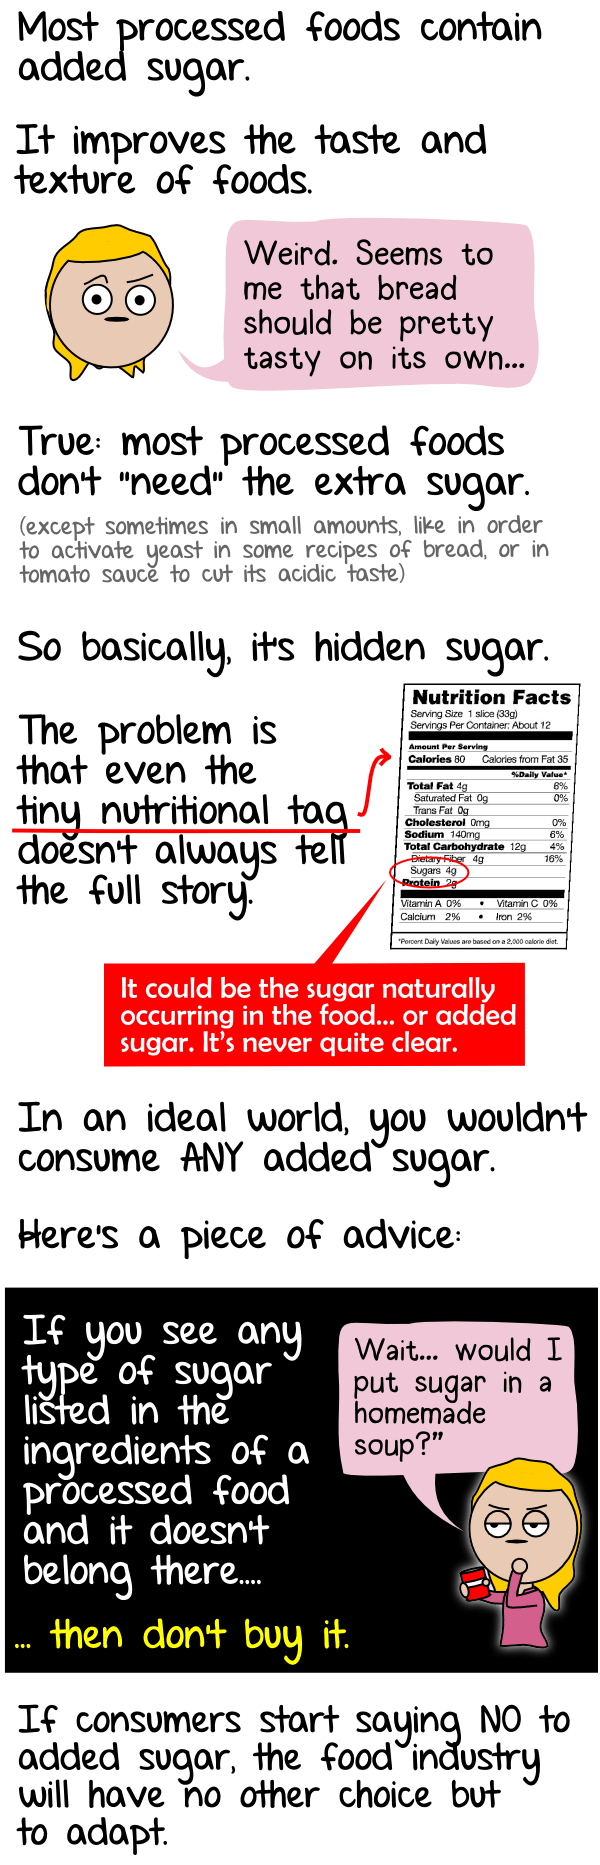 added sugar in processed food